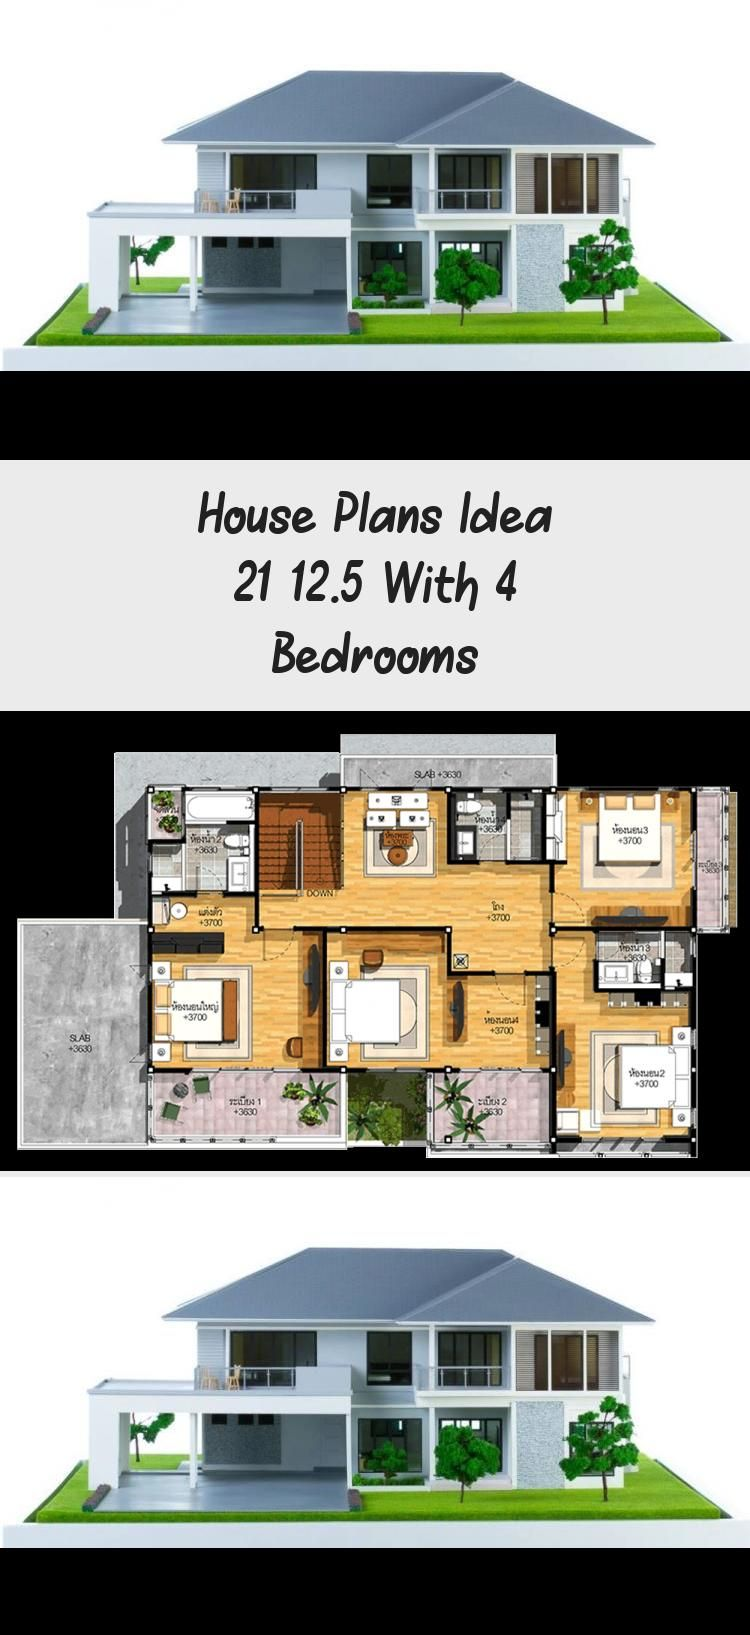 House Plans Idea 21x12 5 With 4 Bedrooms Home Ideassearch Floorplans1800sqft Countryfloorplans Simplefl In 2020 House Plans Country Floor Plans Modern Floor Plans